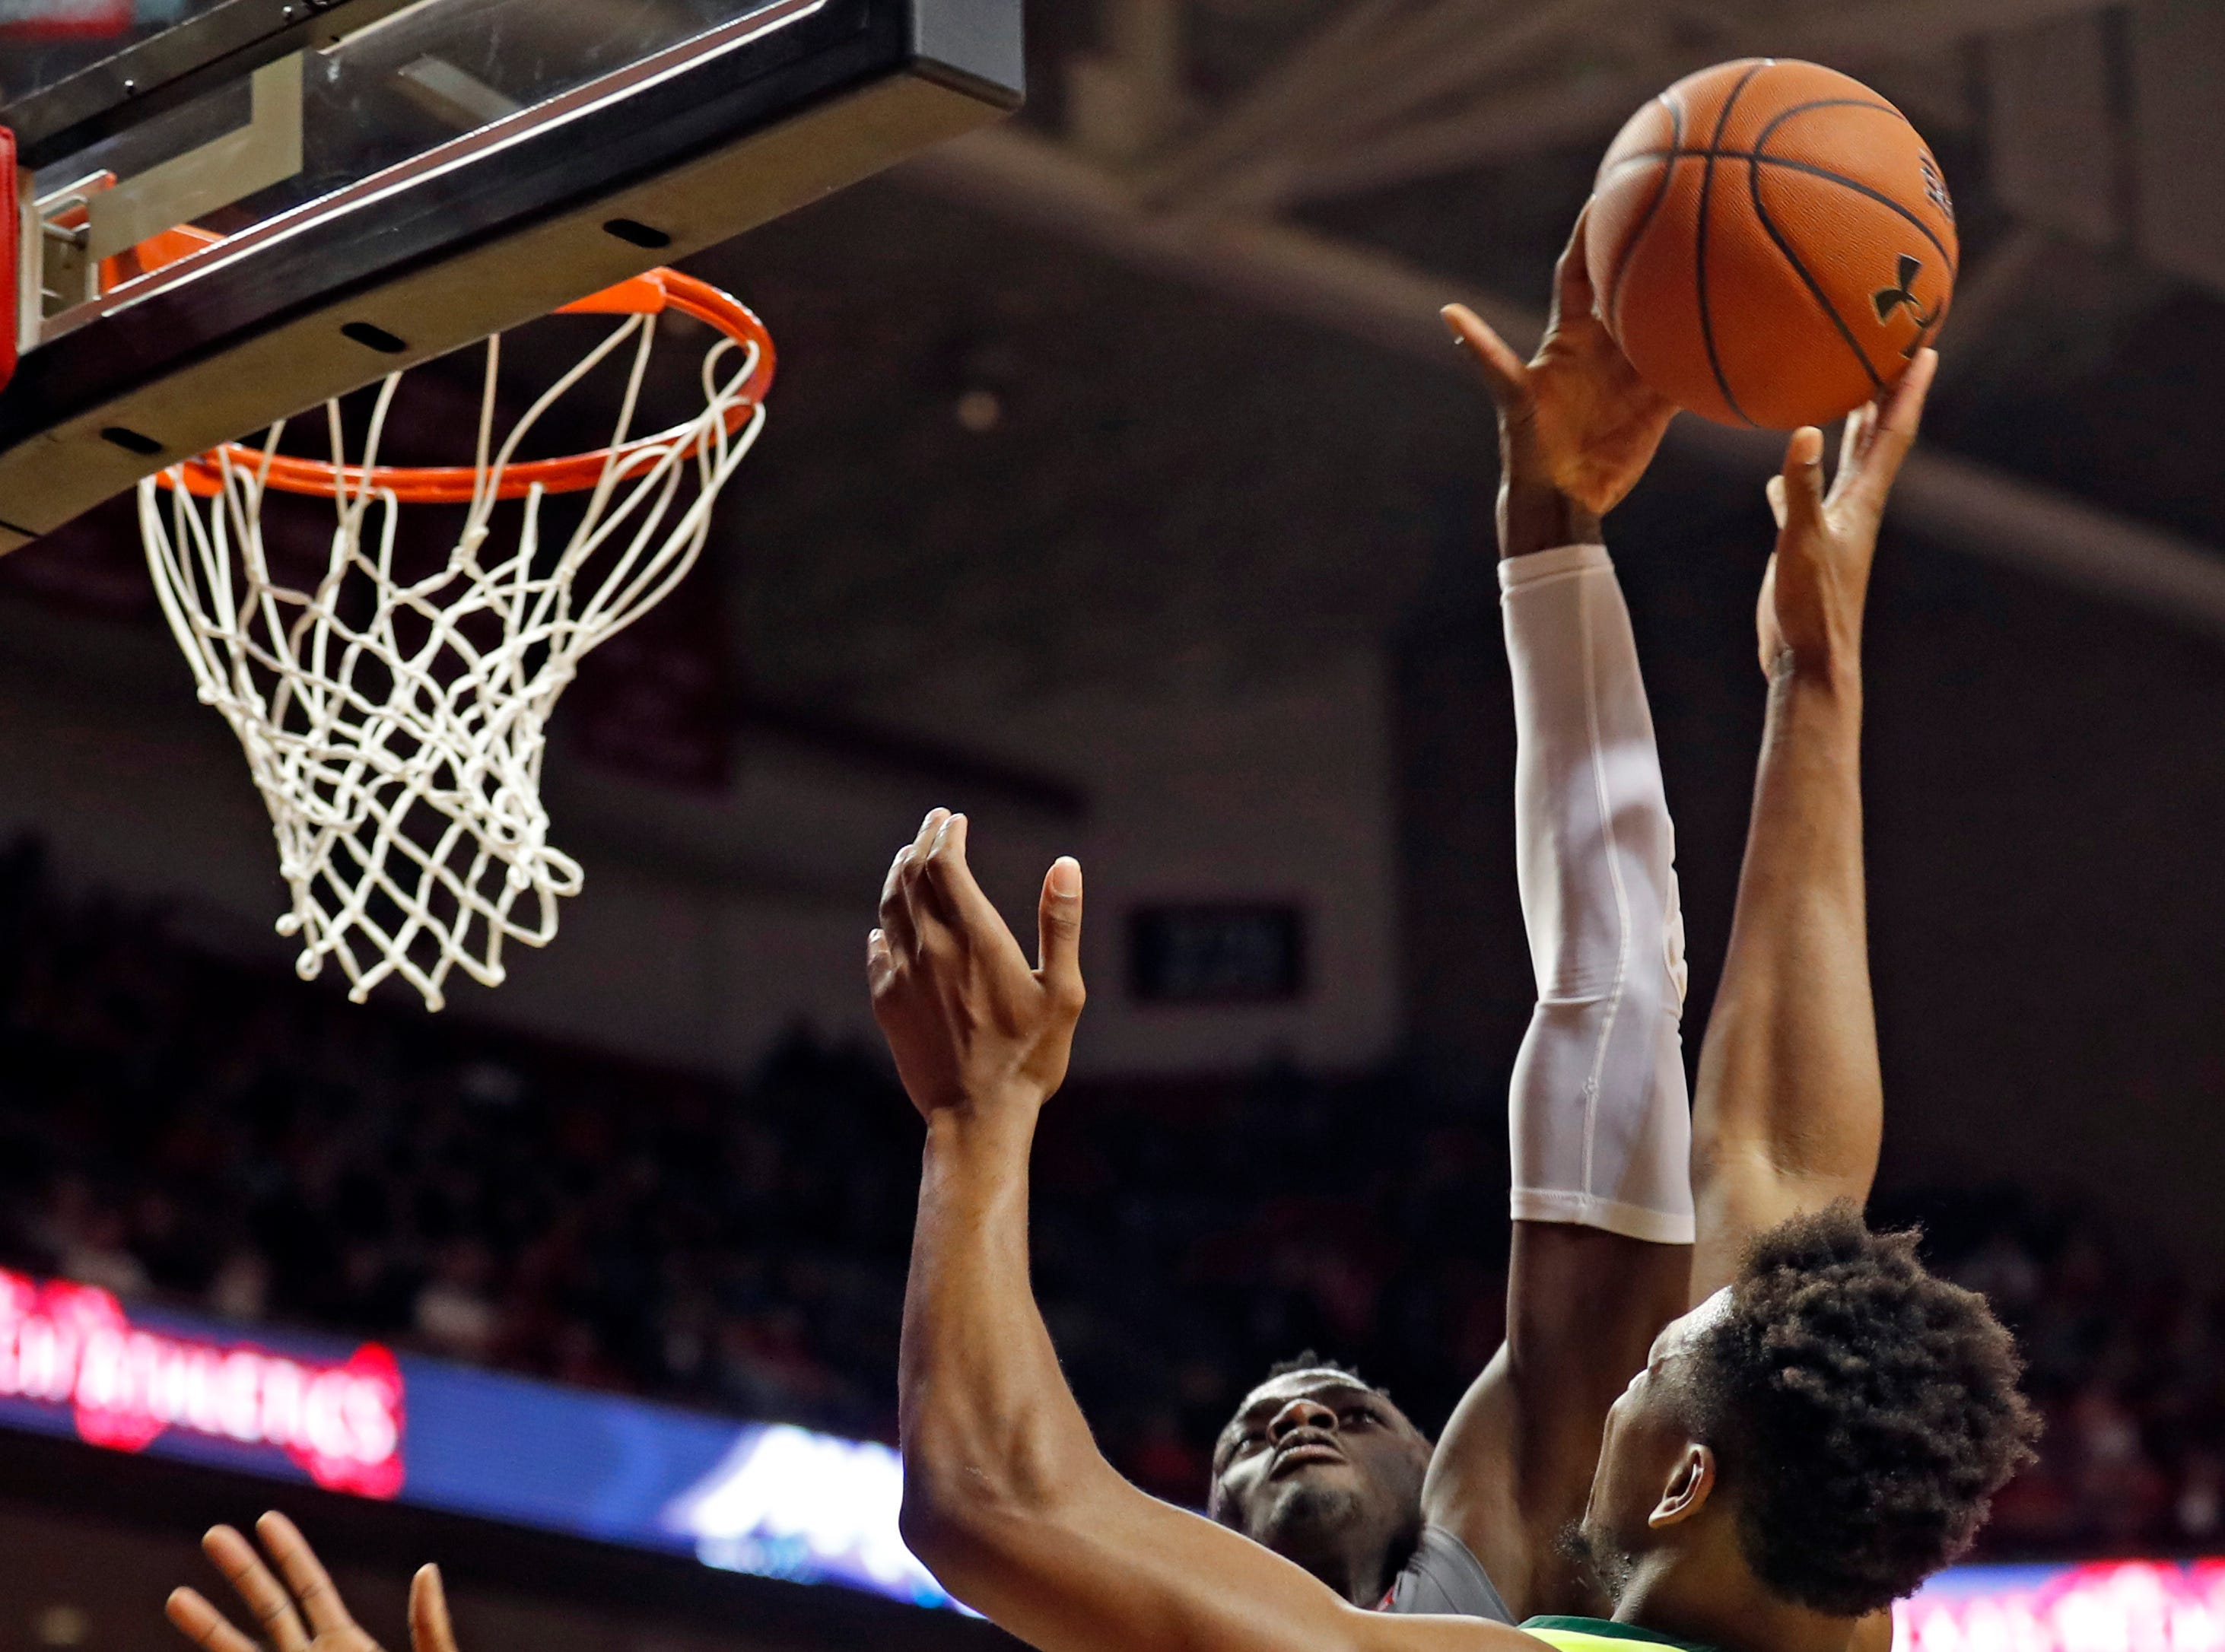 Texas Tech's Norense Odiase (32) blocks the shot by Baylor's Flo Thamba (0)  during the first half of an NCAA college basketball game Saturday, Feb. 16, 2019, in Lubbock, Texas. (AP Photo/Brad Tollefson)